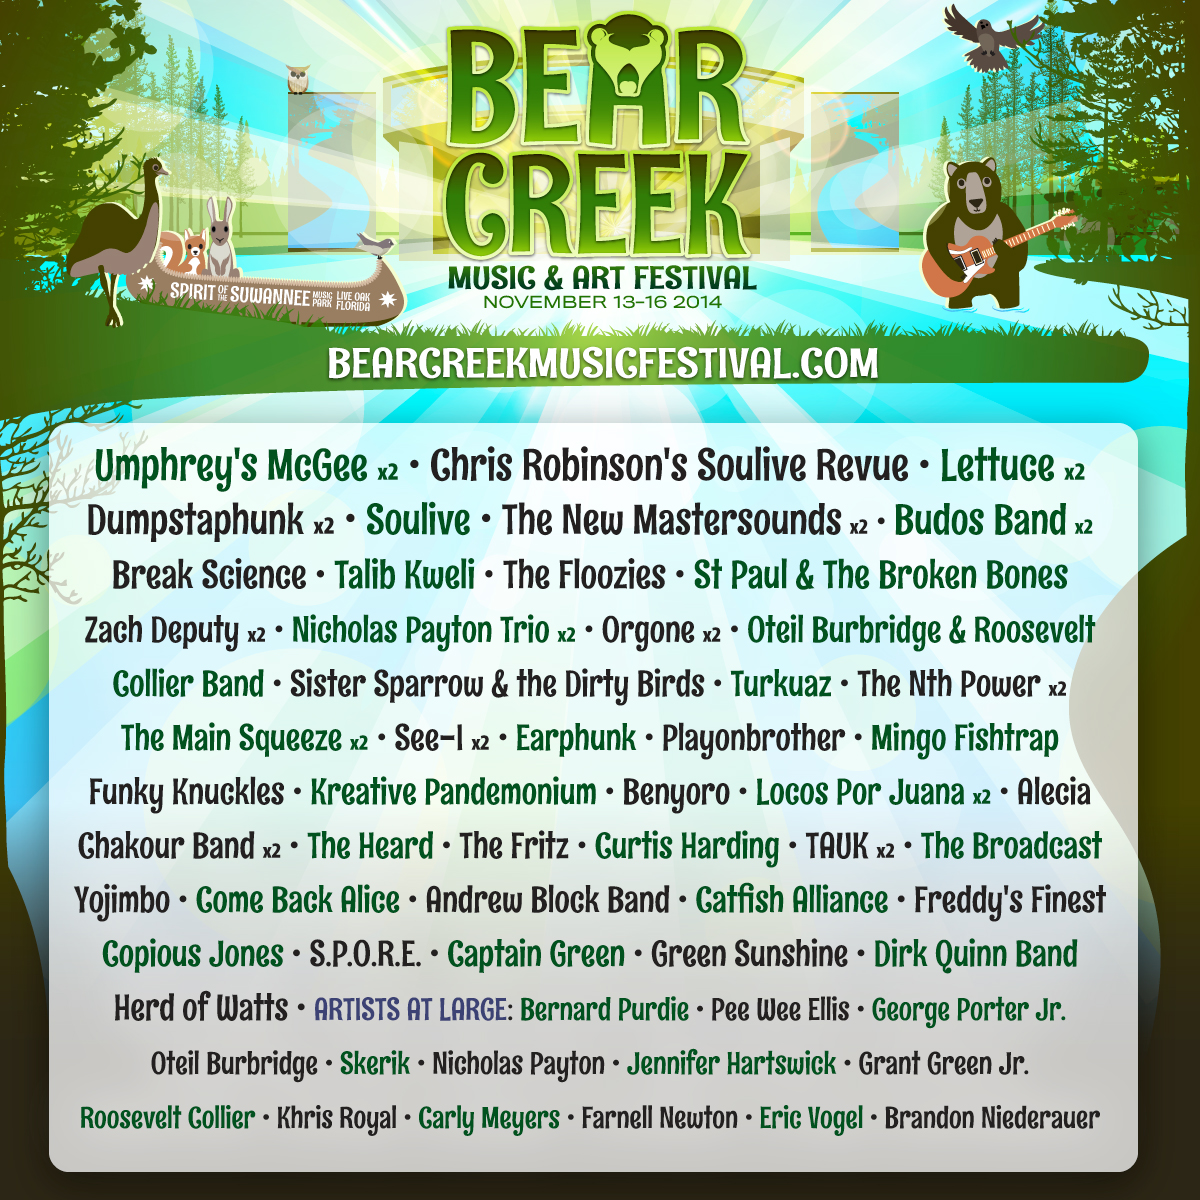 BEAR CREEK MUSIC & ART FESTIVAL ADDS CHRIS ROBINSON SOULIVE REVUE, TALIB KWELI AND MORE